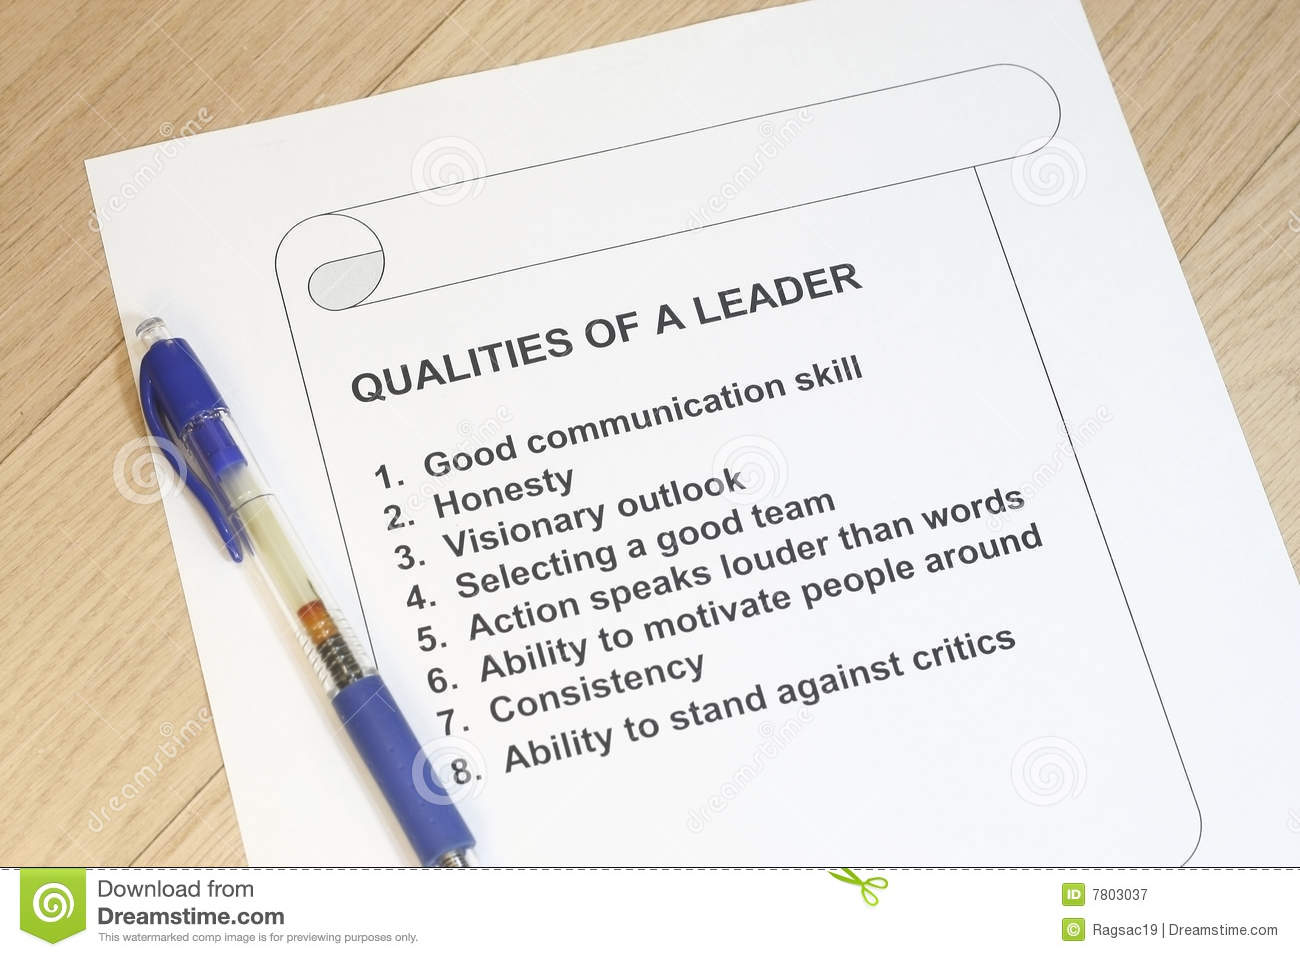 qualities of a leader royalty stock photography image  qualities of a leader